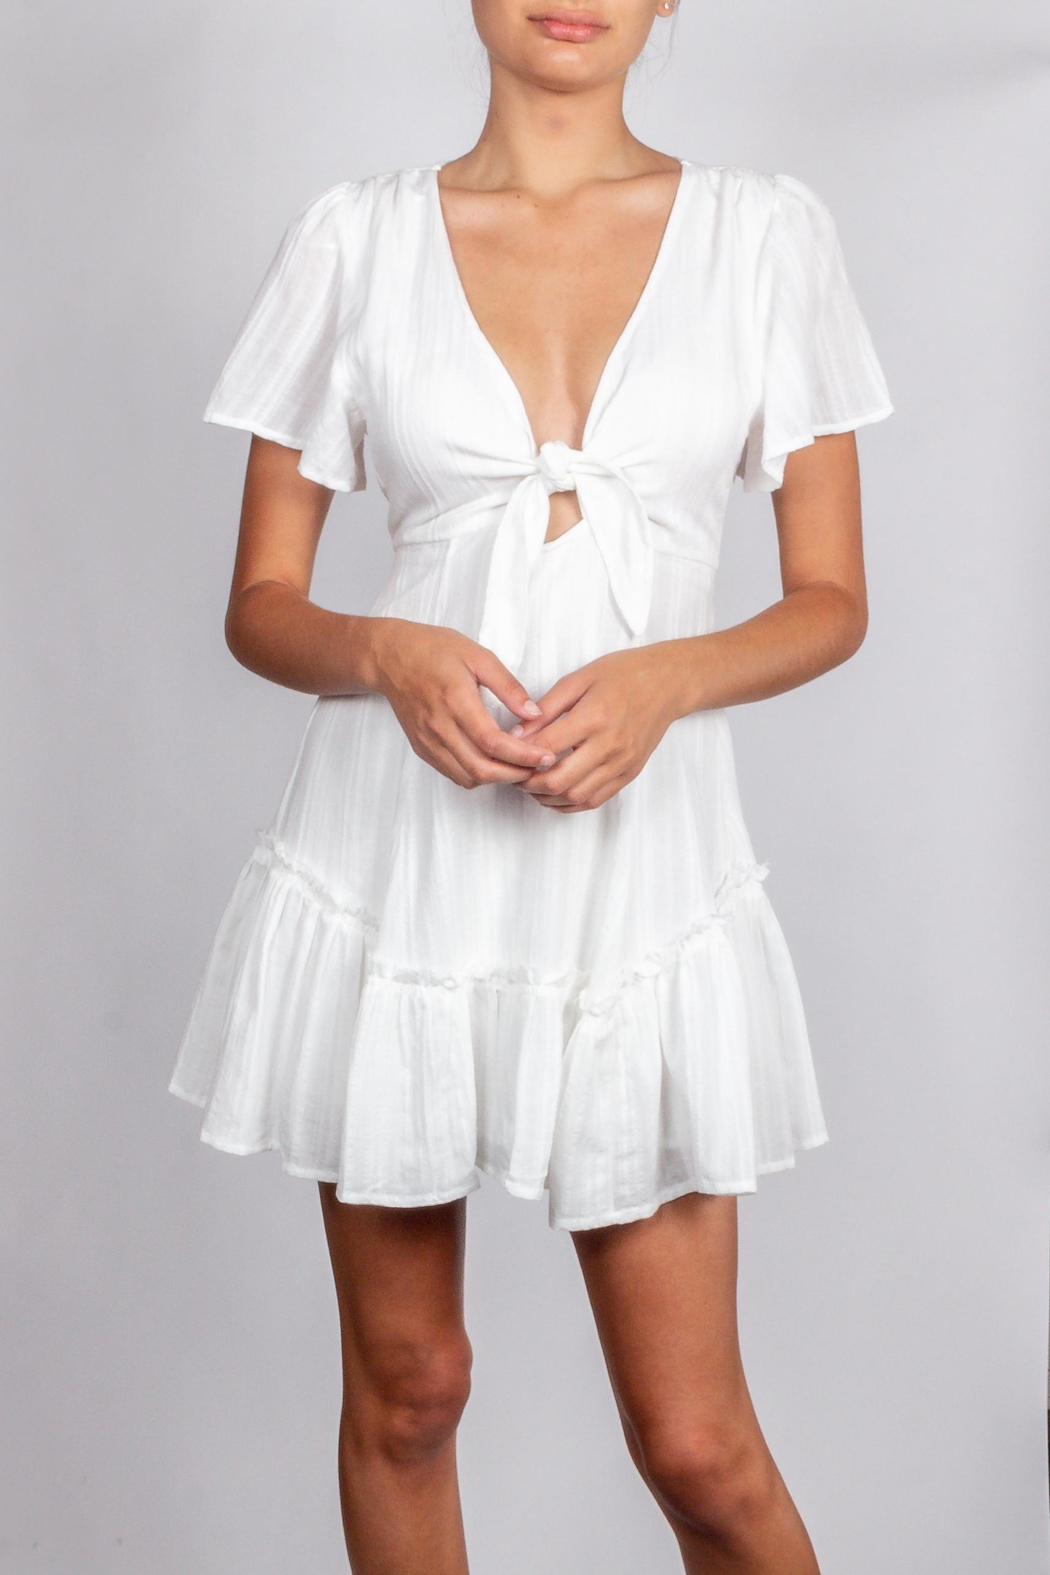 Cotton Candy LA Detailed-White-Tie Chest Dress - Front Full Image